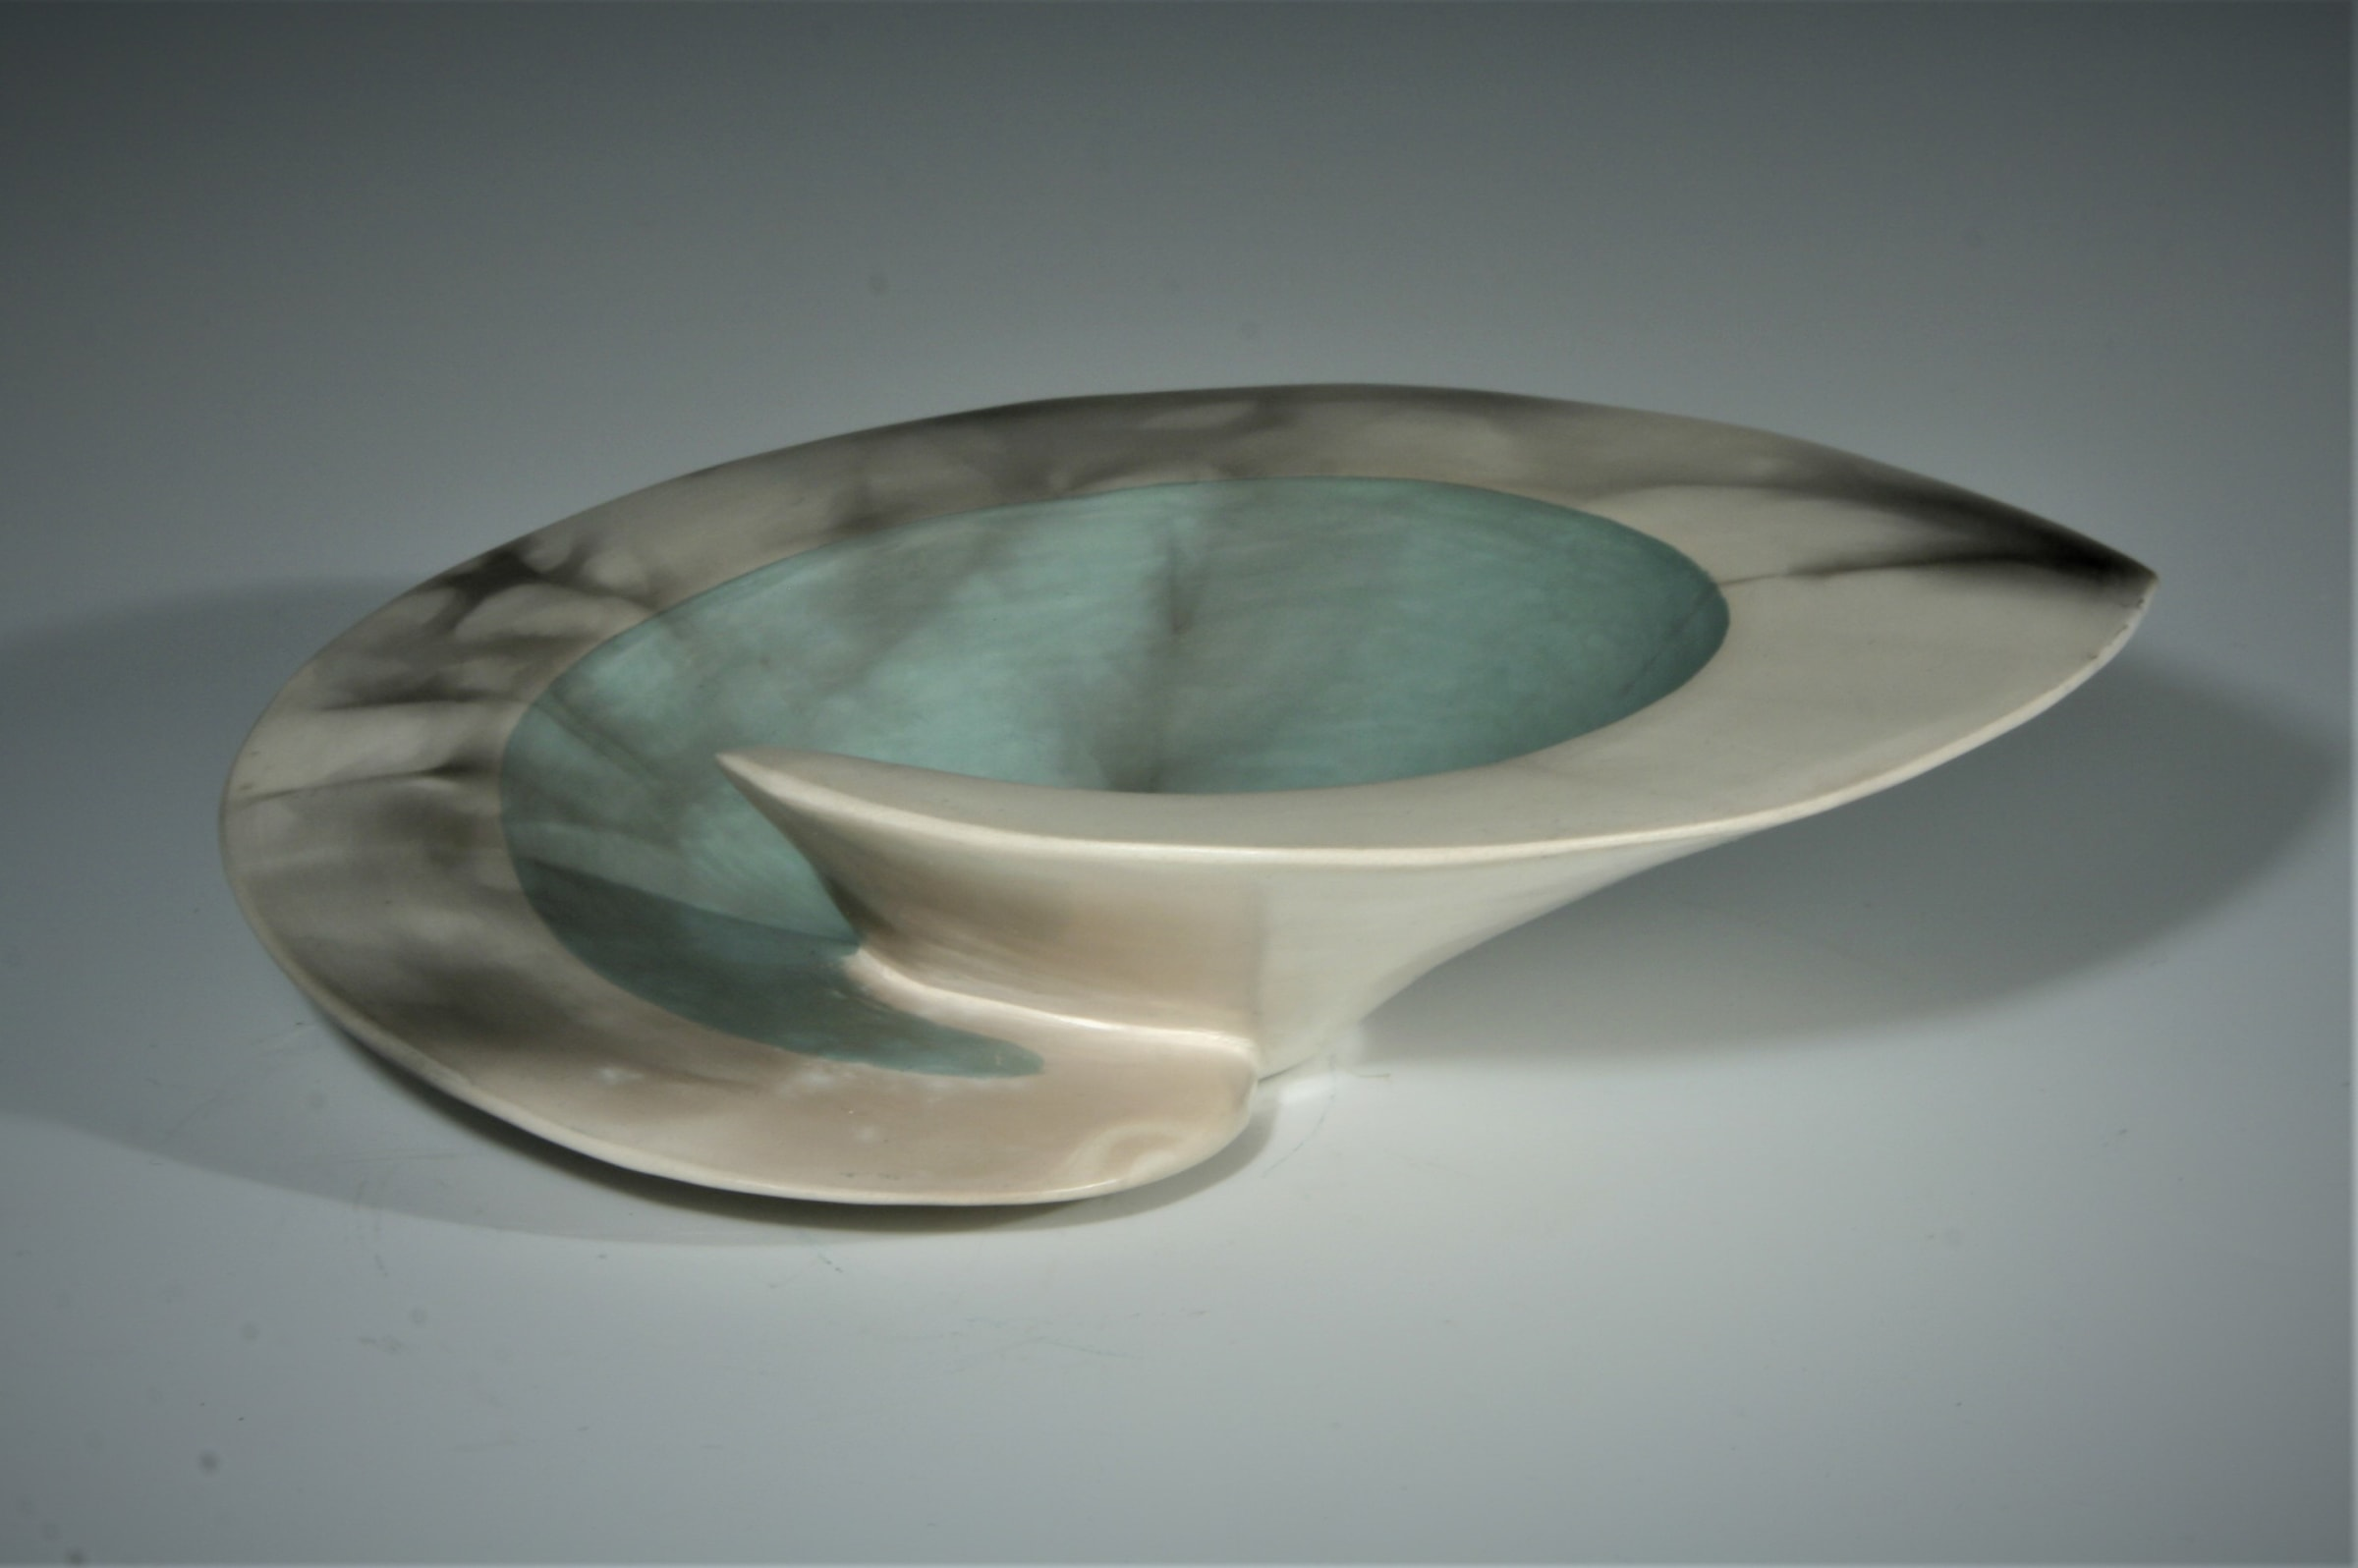 """<span class=""""link fancybox-details-link""""><a href=""""/artists/38-antonia-salmon/works/5693-antonia-salmon-green-dervish-bowl-i-2018/"""">View Detail Page</a></span><div class=""""artist""""><strong>Antonia Salmon</strong></div> b. 1959 <div class=""""title""""><em>Green Dervish Bowl I</em>, 2018</div> <div class=""""signed_and_dated"""">stamped AS</div> <div class=""""medium"""">Ceramic</div><div class=""""copyright_line"""">£ 21 x 10 Months, OwnArt 0% APR</div>"""